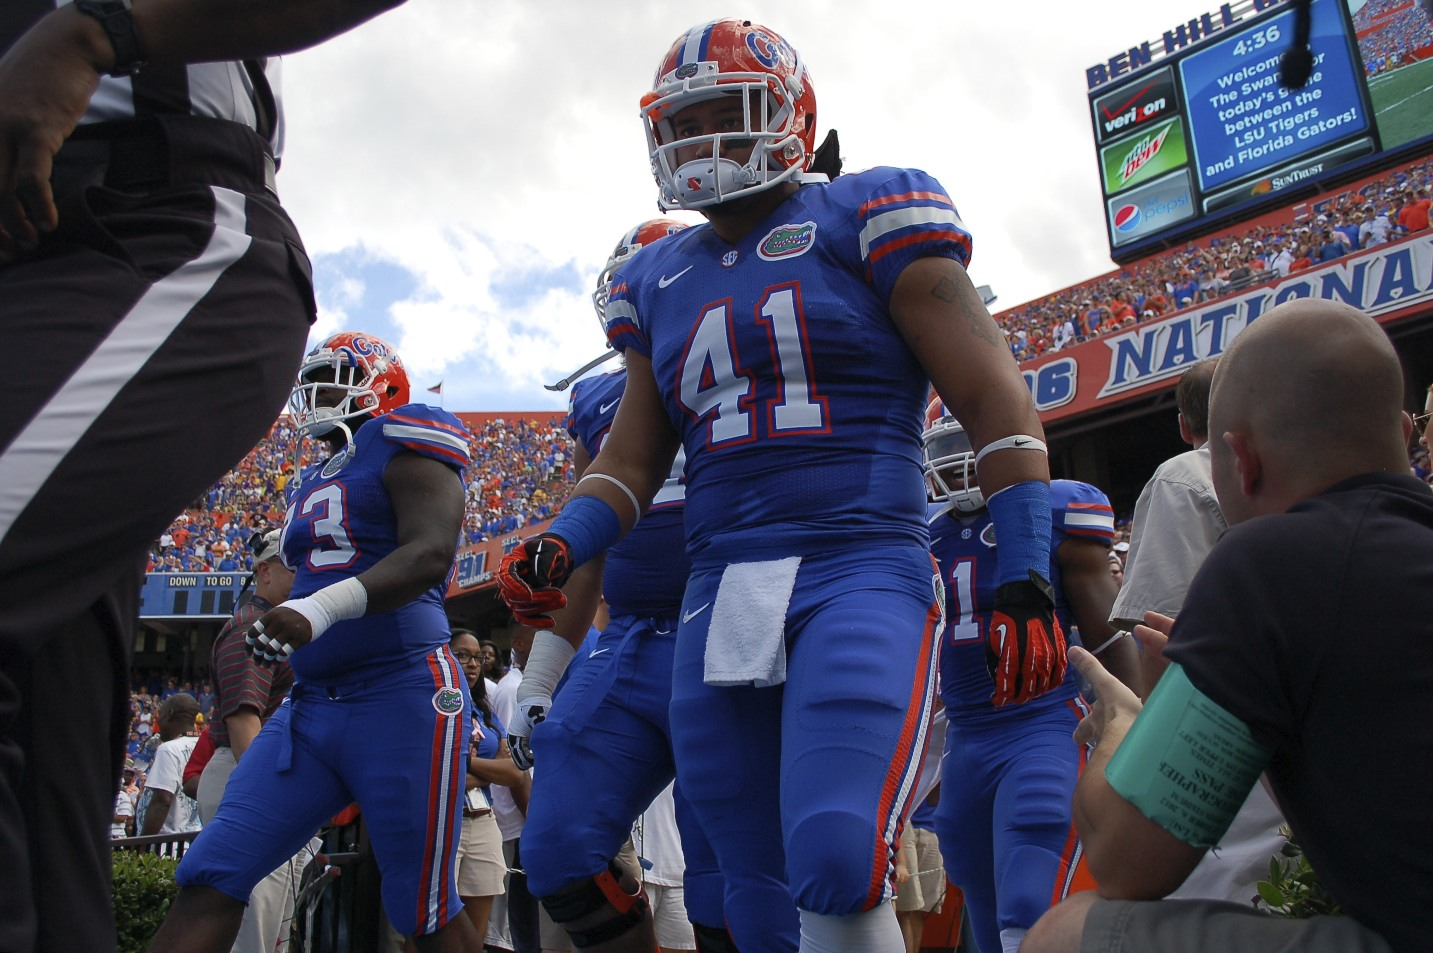 Florida's Hunter Joyer walking out for Saturday's game against the LSU Tigers.